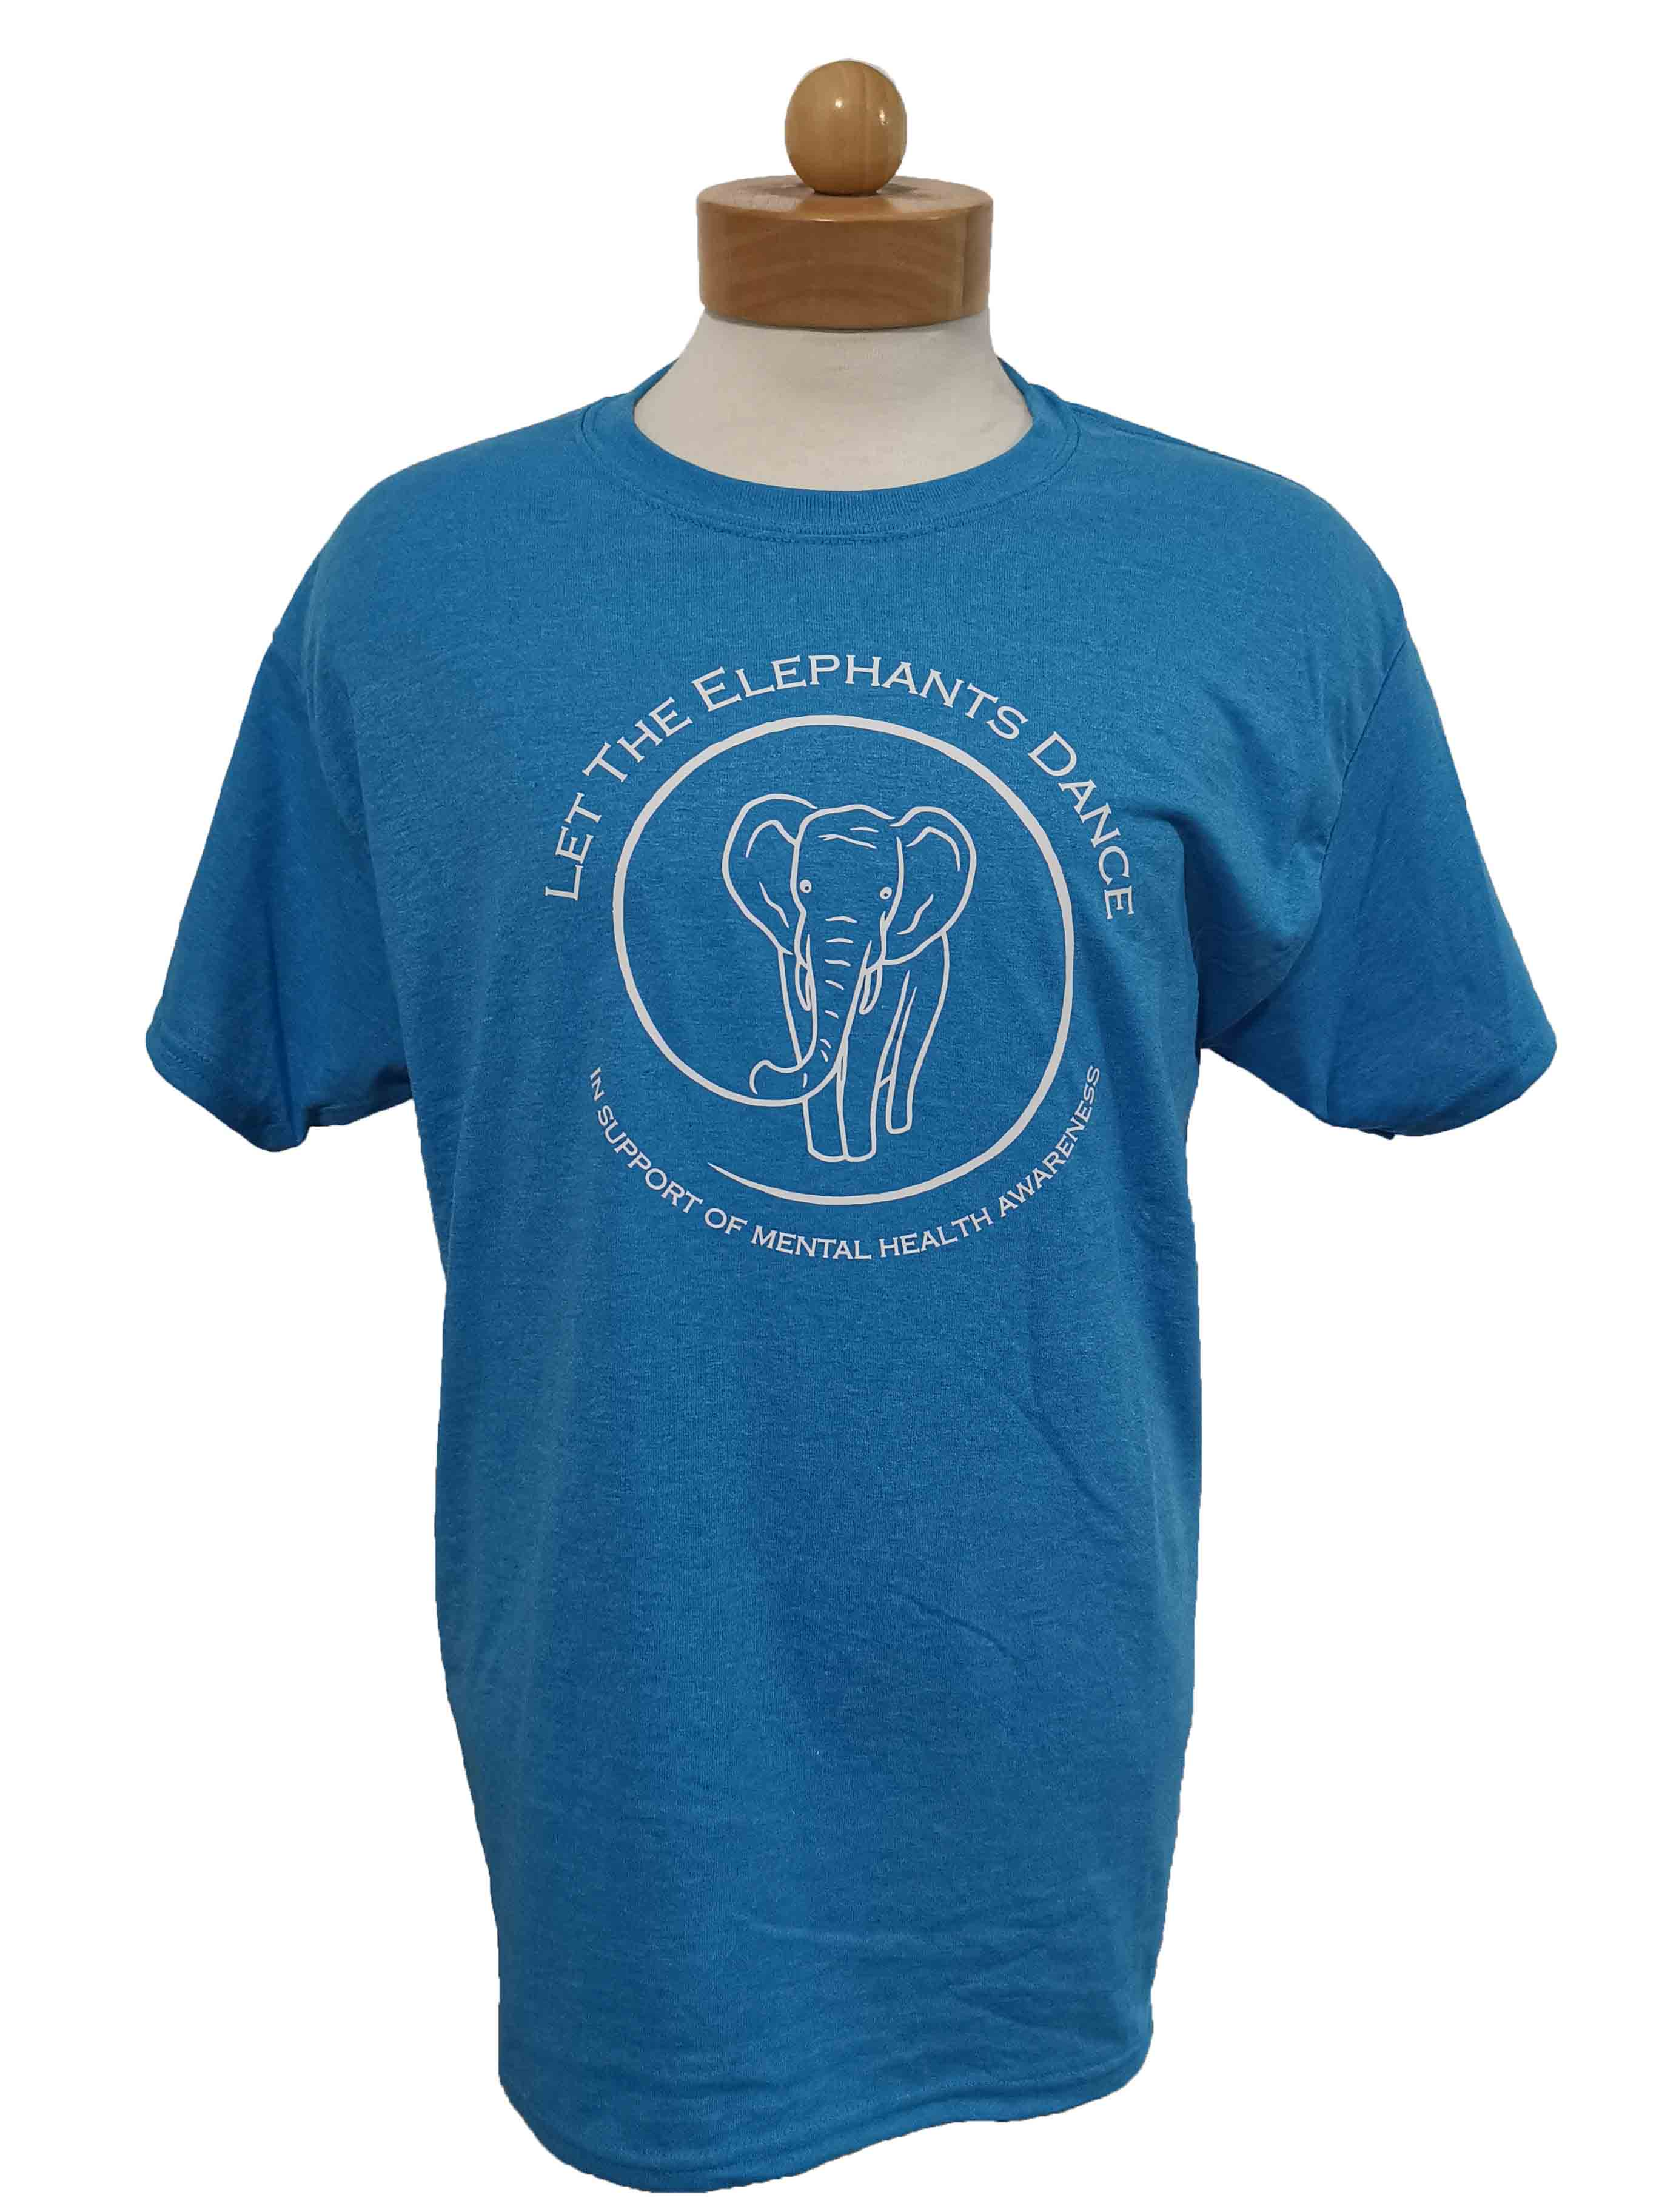 Let the Elephants Dance T-shirt